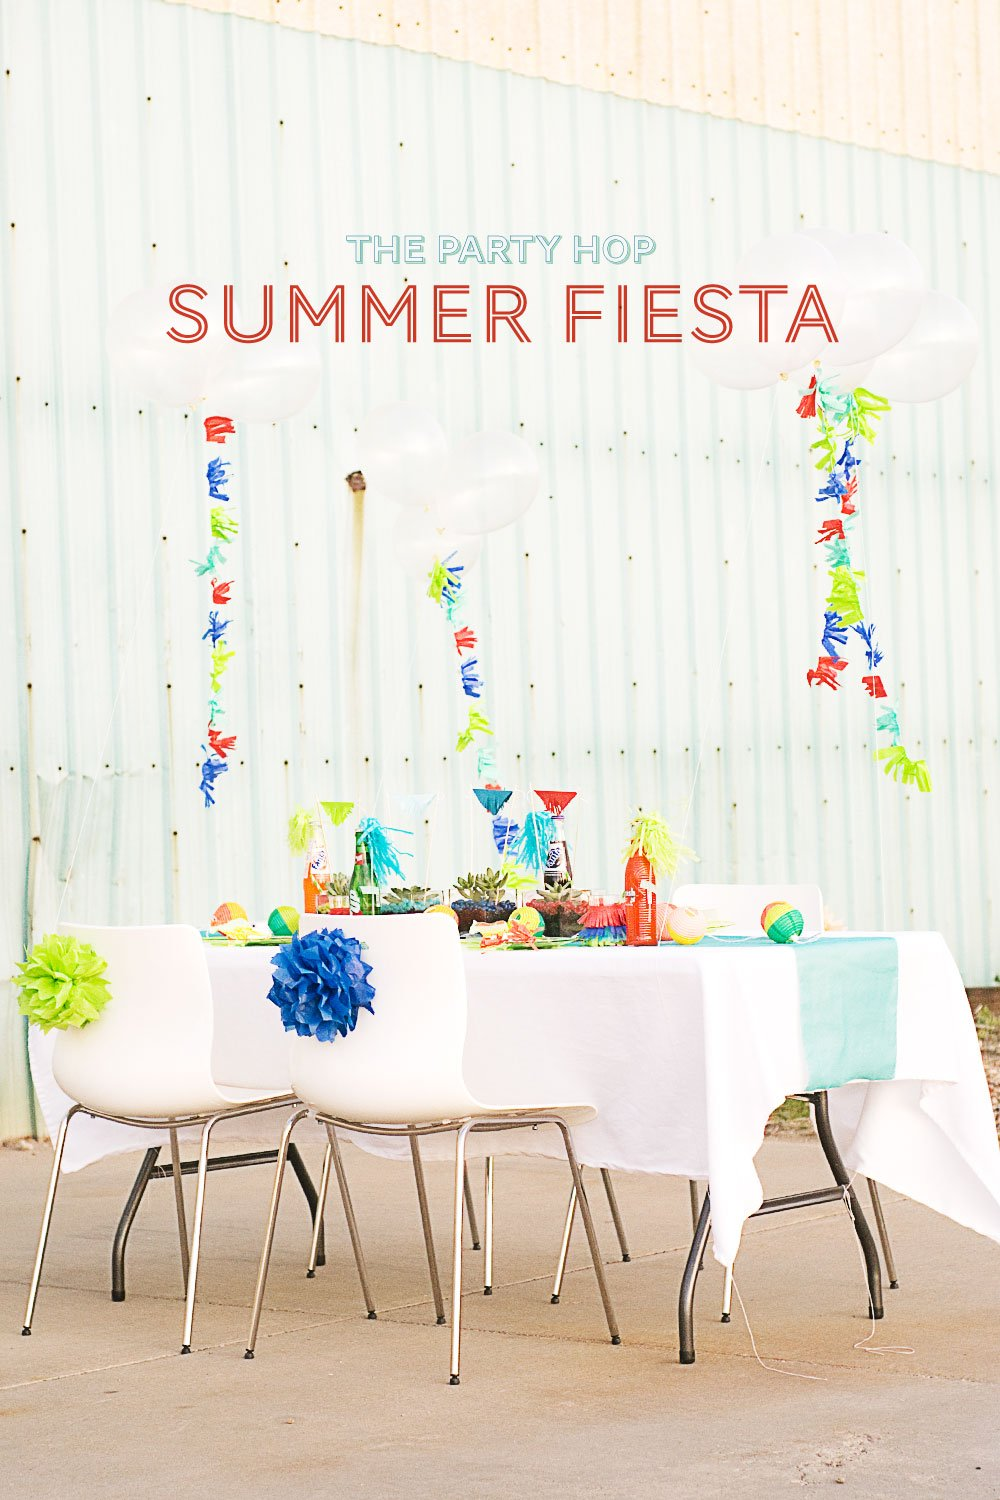 Summer Fiesta Party Ideas via @PagingSupermom